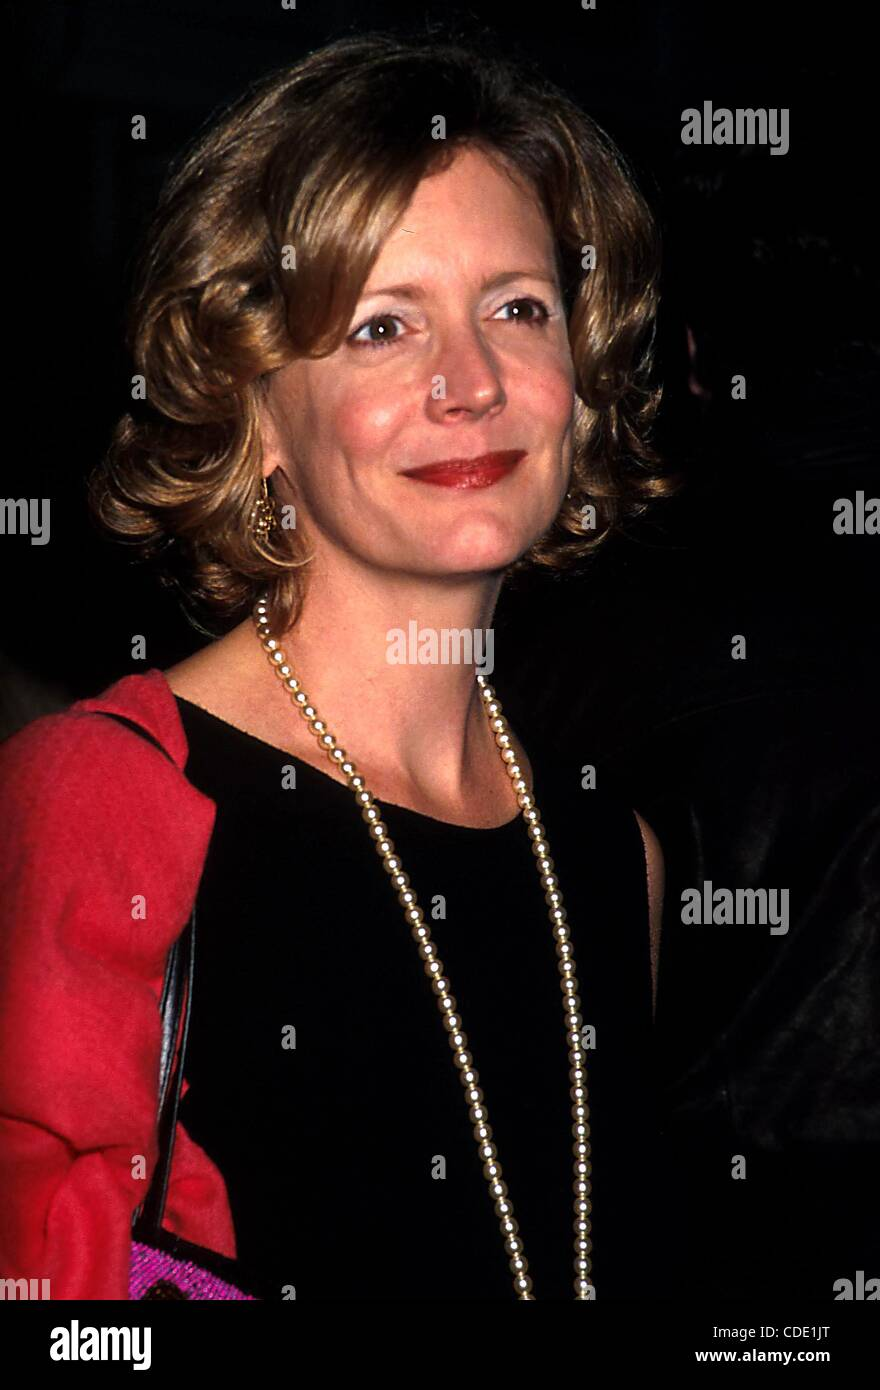 Pussy Kristine Sutherland nudes (26 photo) Cleavage, 2018, butt